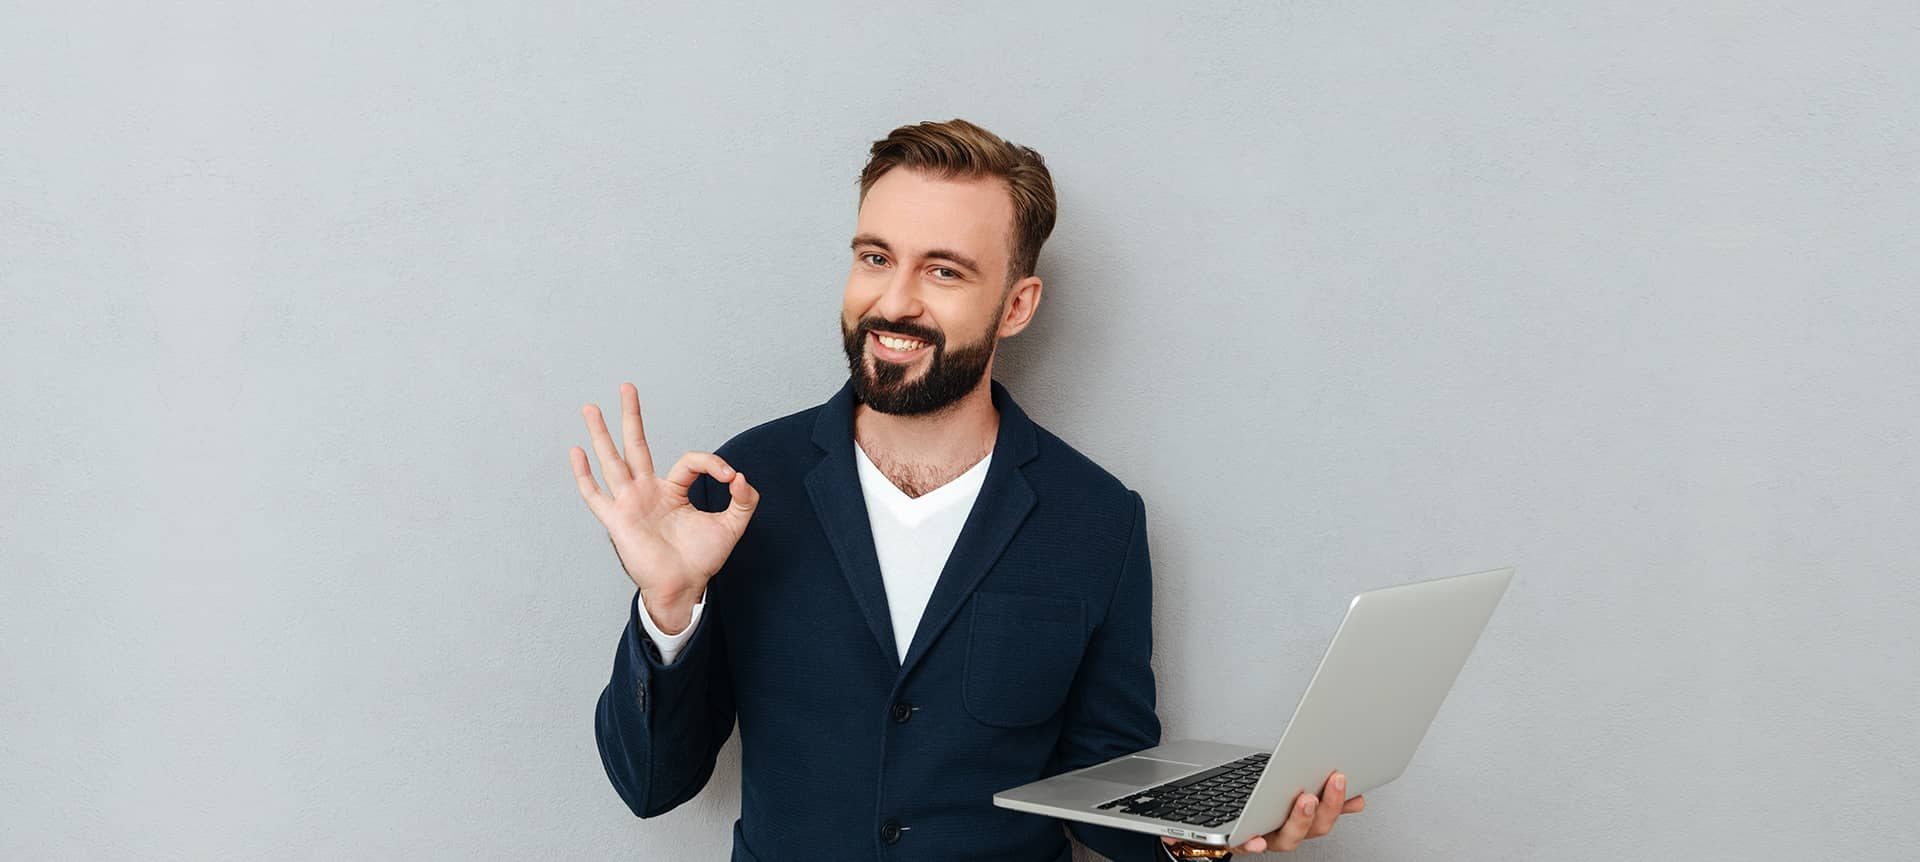 A male employee holding his laptop in one hand and doing an OK gesture with the other hand.